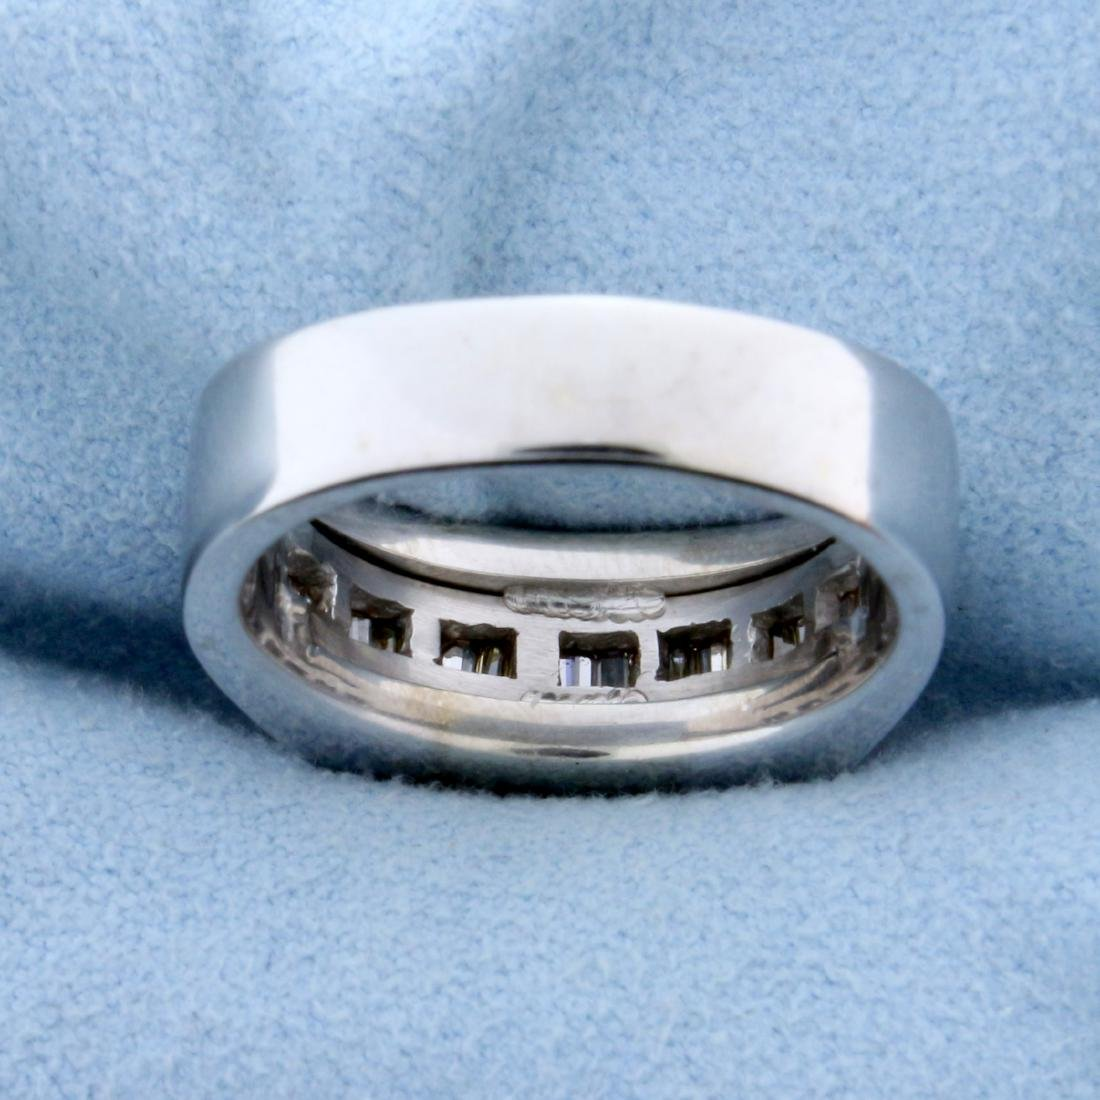 Over 2ct TW Diamond Engagement Ring in 14k White Gold - 4